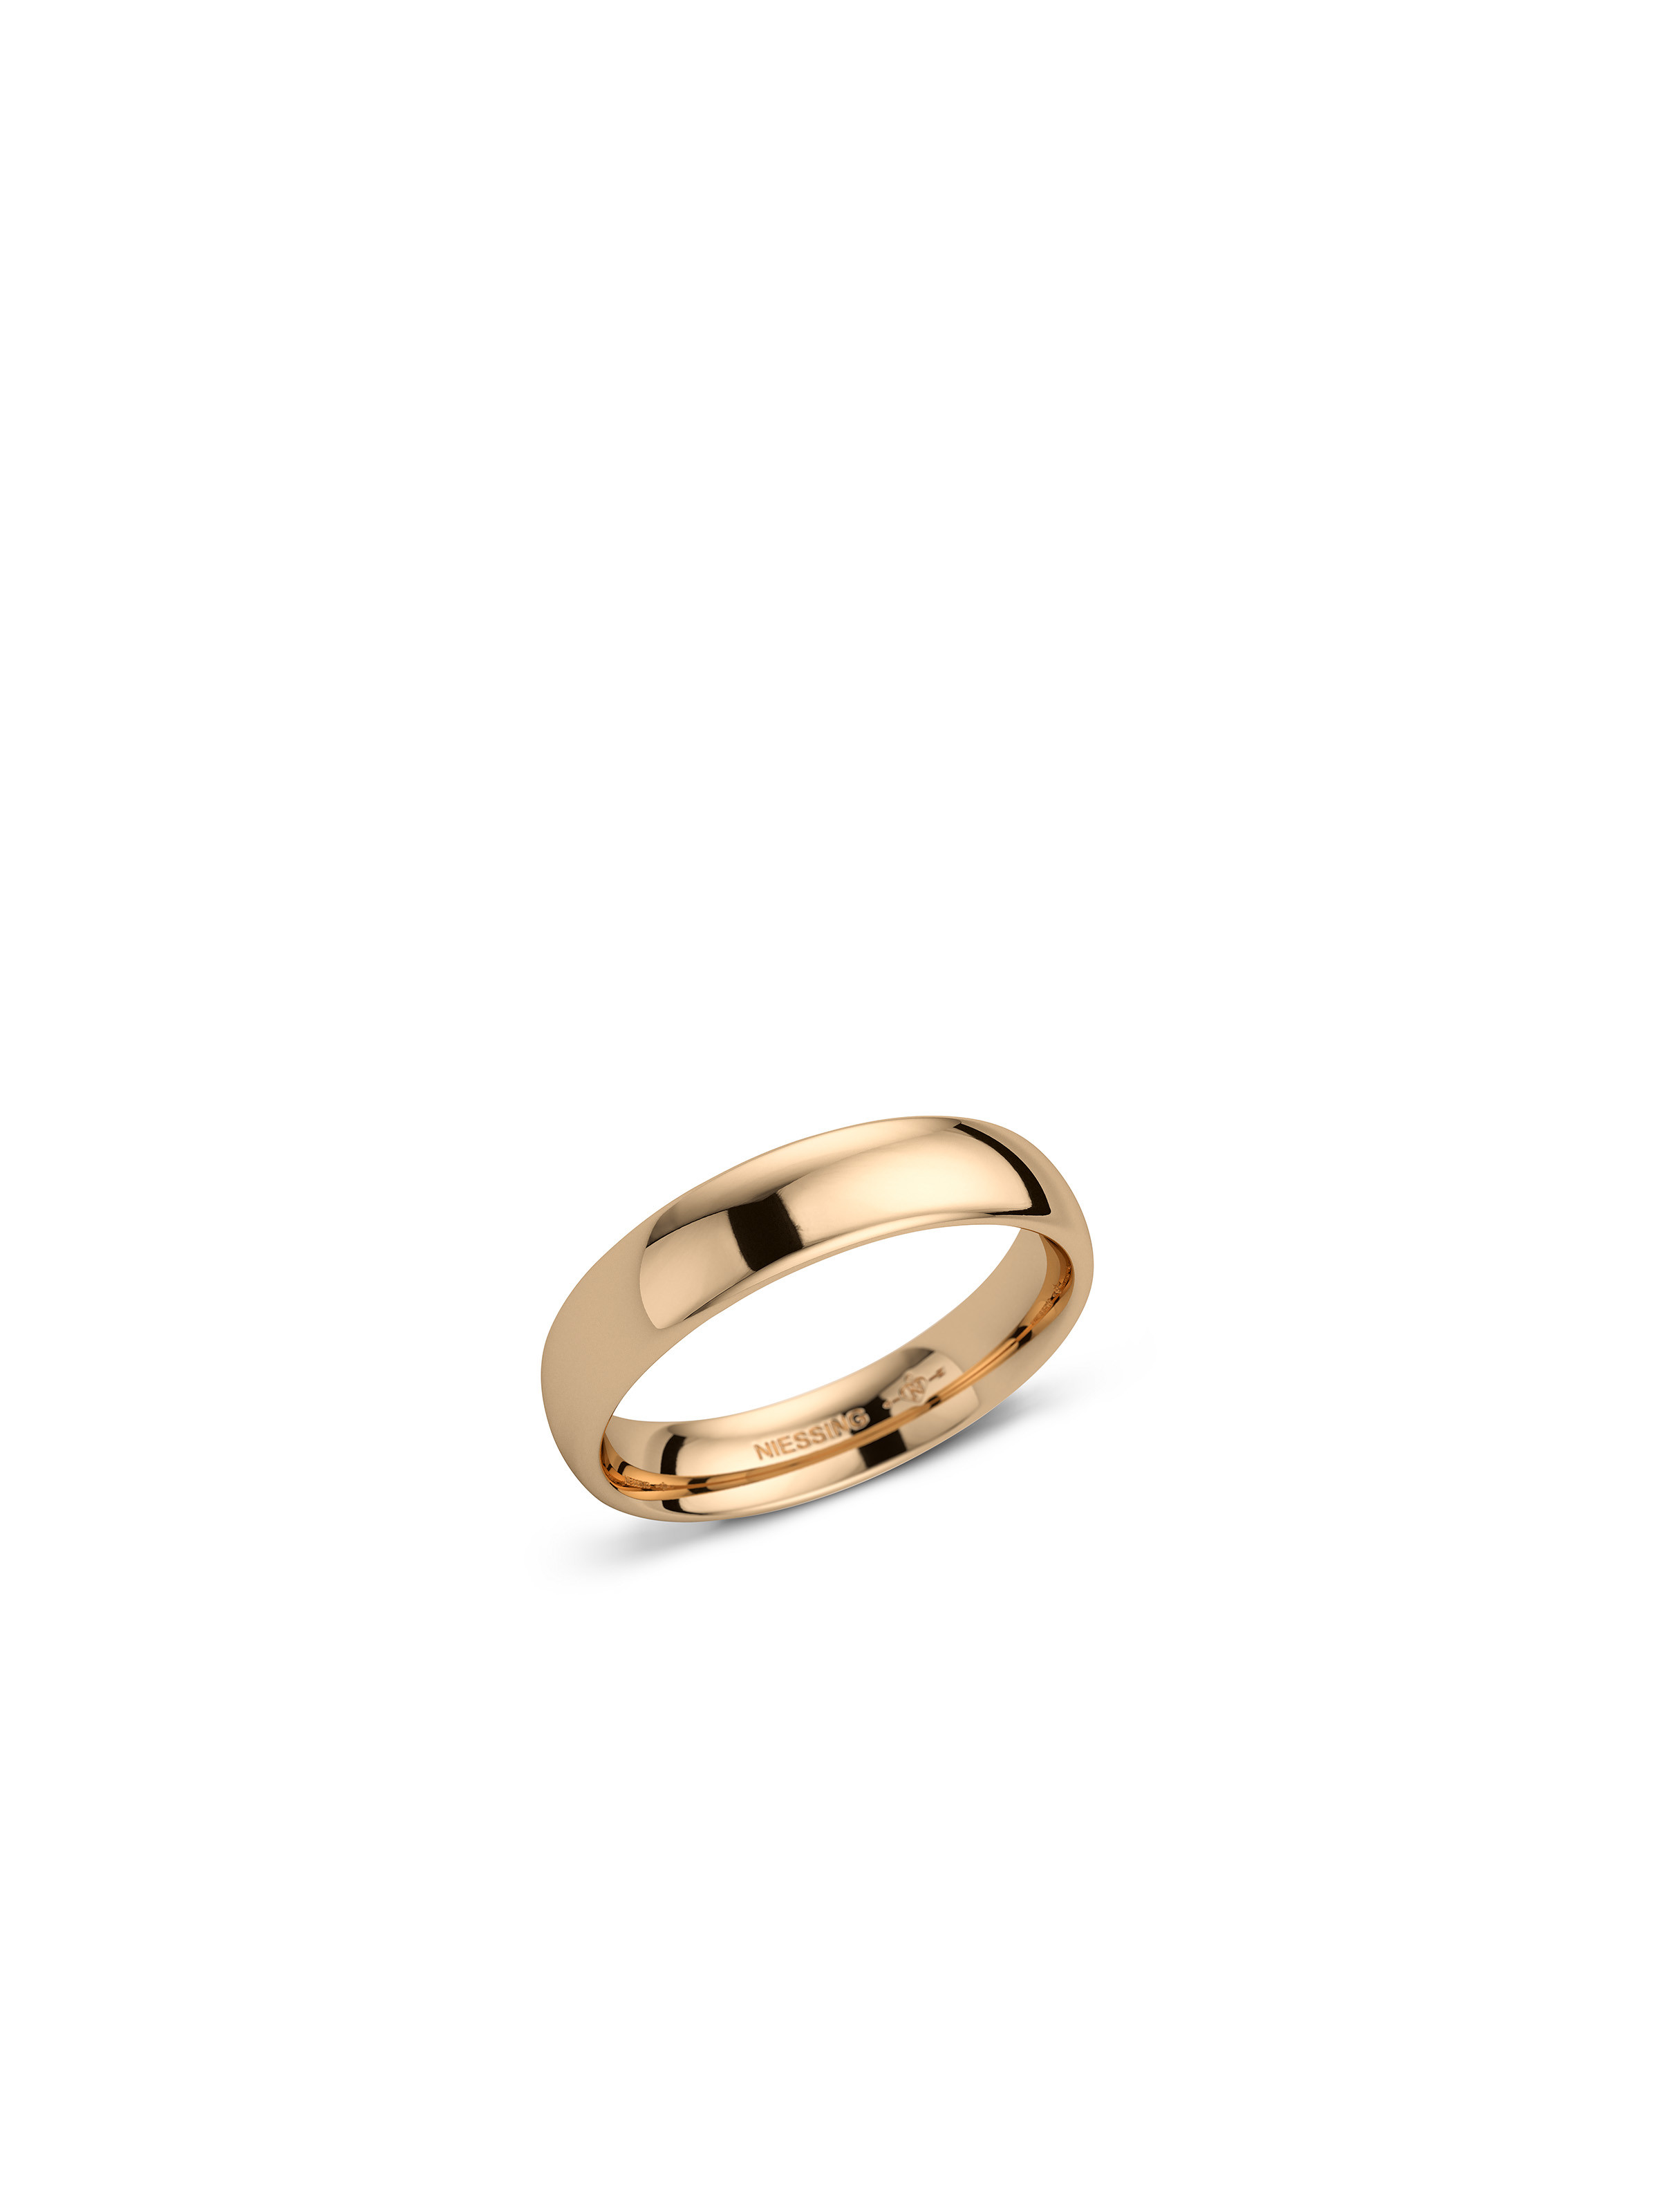 Soft Classic wedding ring -curved/domed- with a polished surface